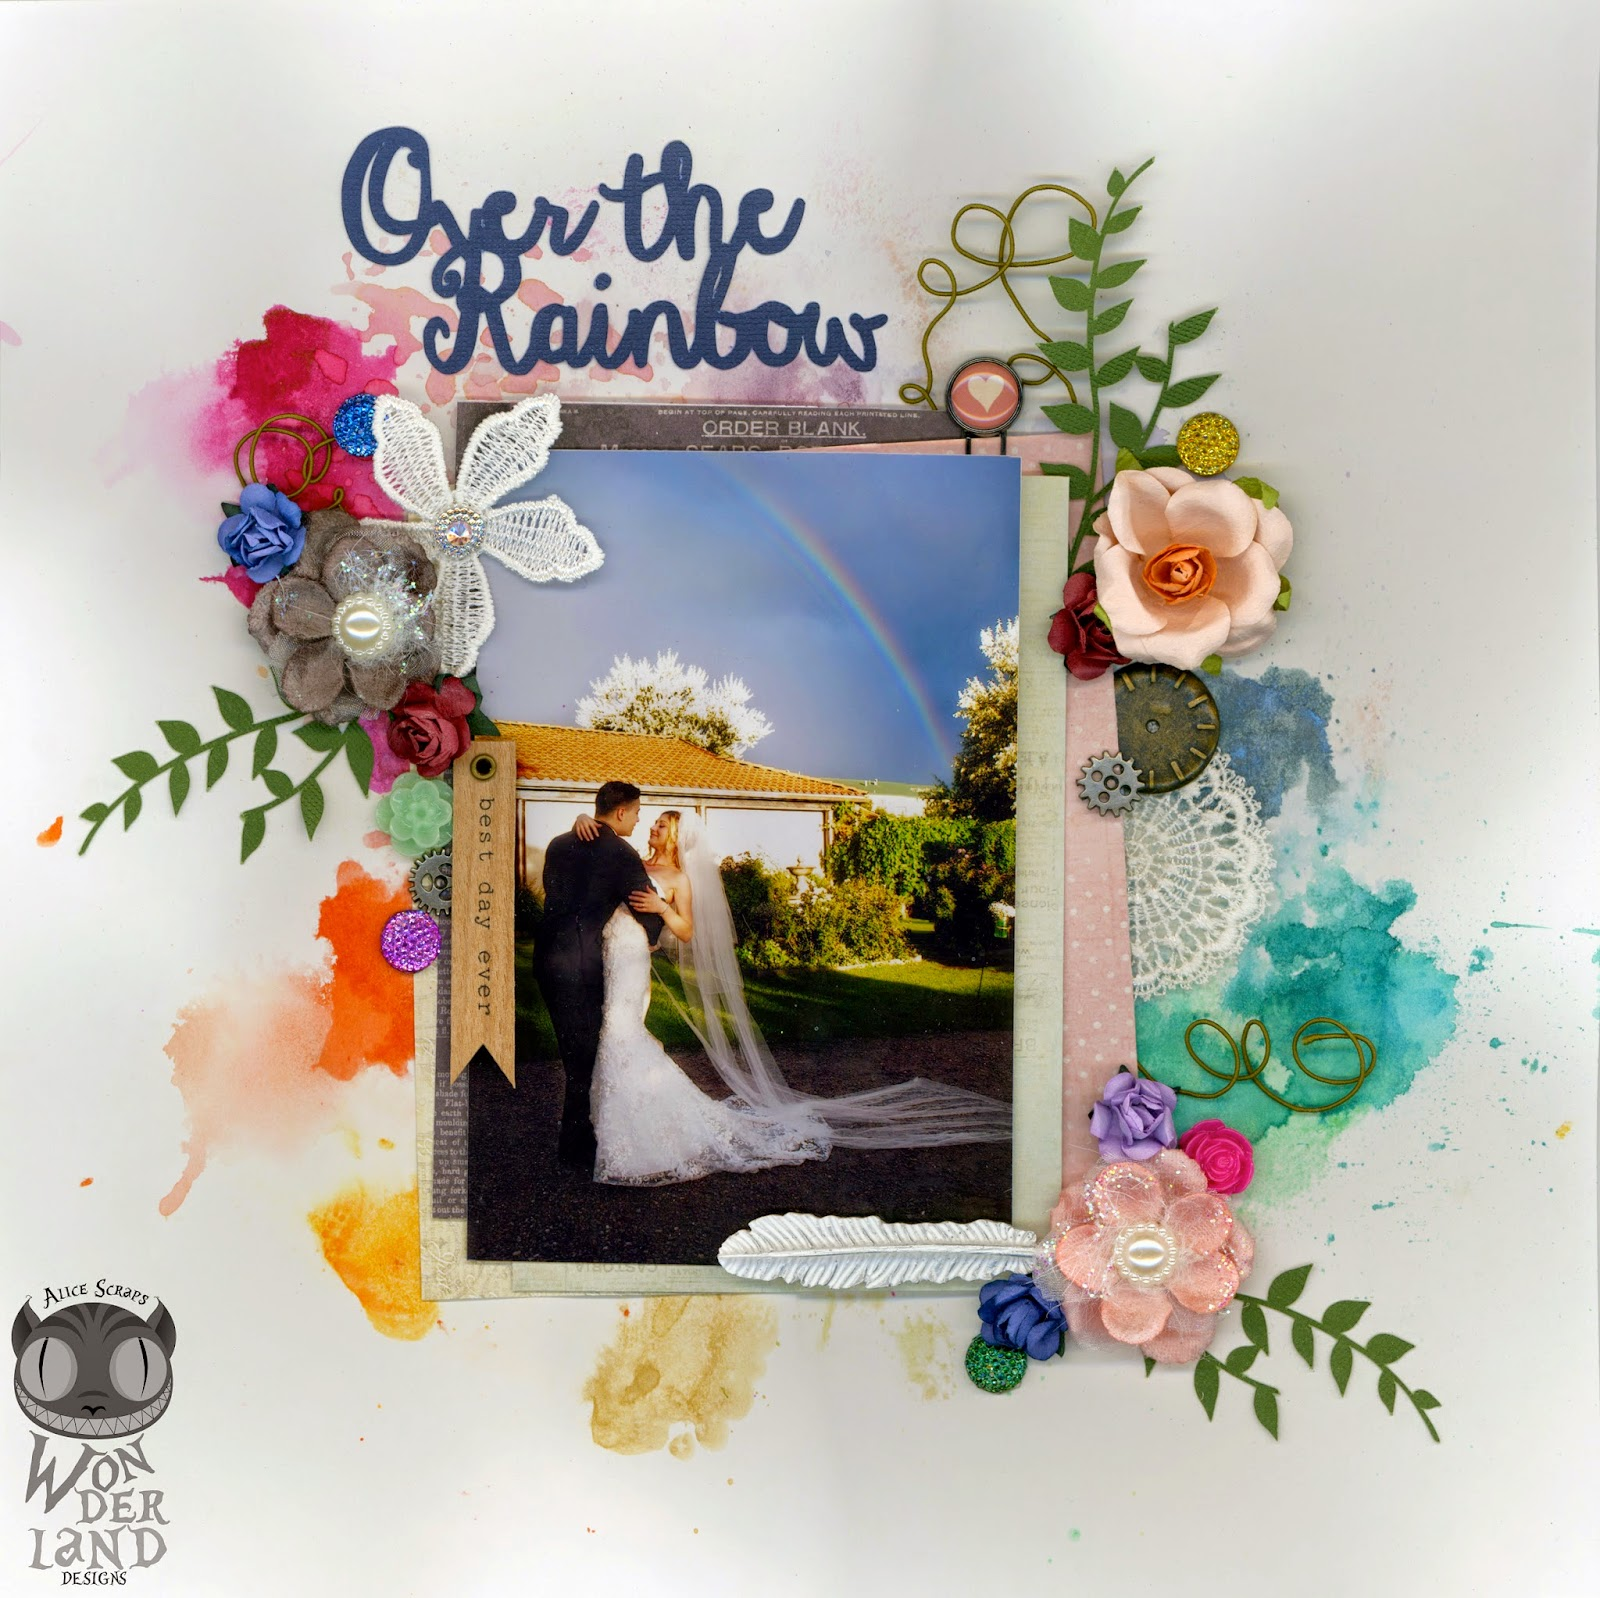 Over the Rainbow uses a mix of mists and inks to create the colorful background inspired by the rainbow in the wedding photograph | Alice Scraps Wonderland